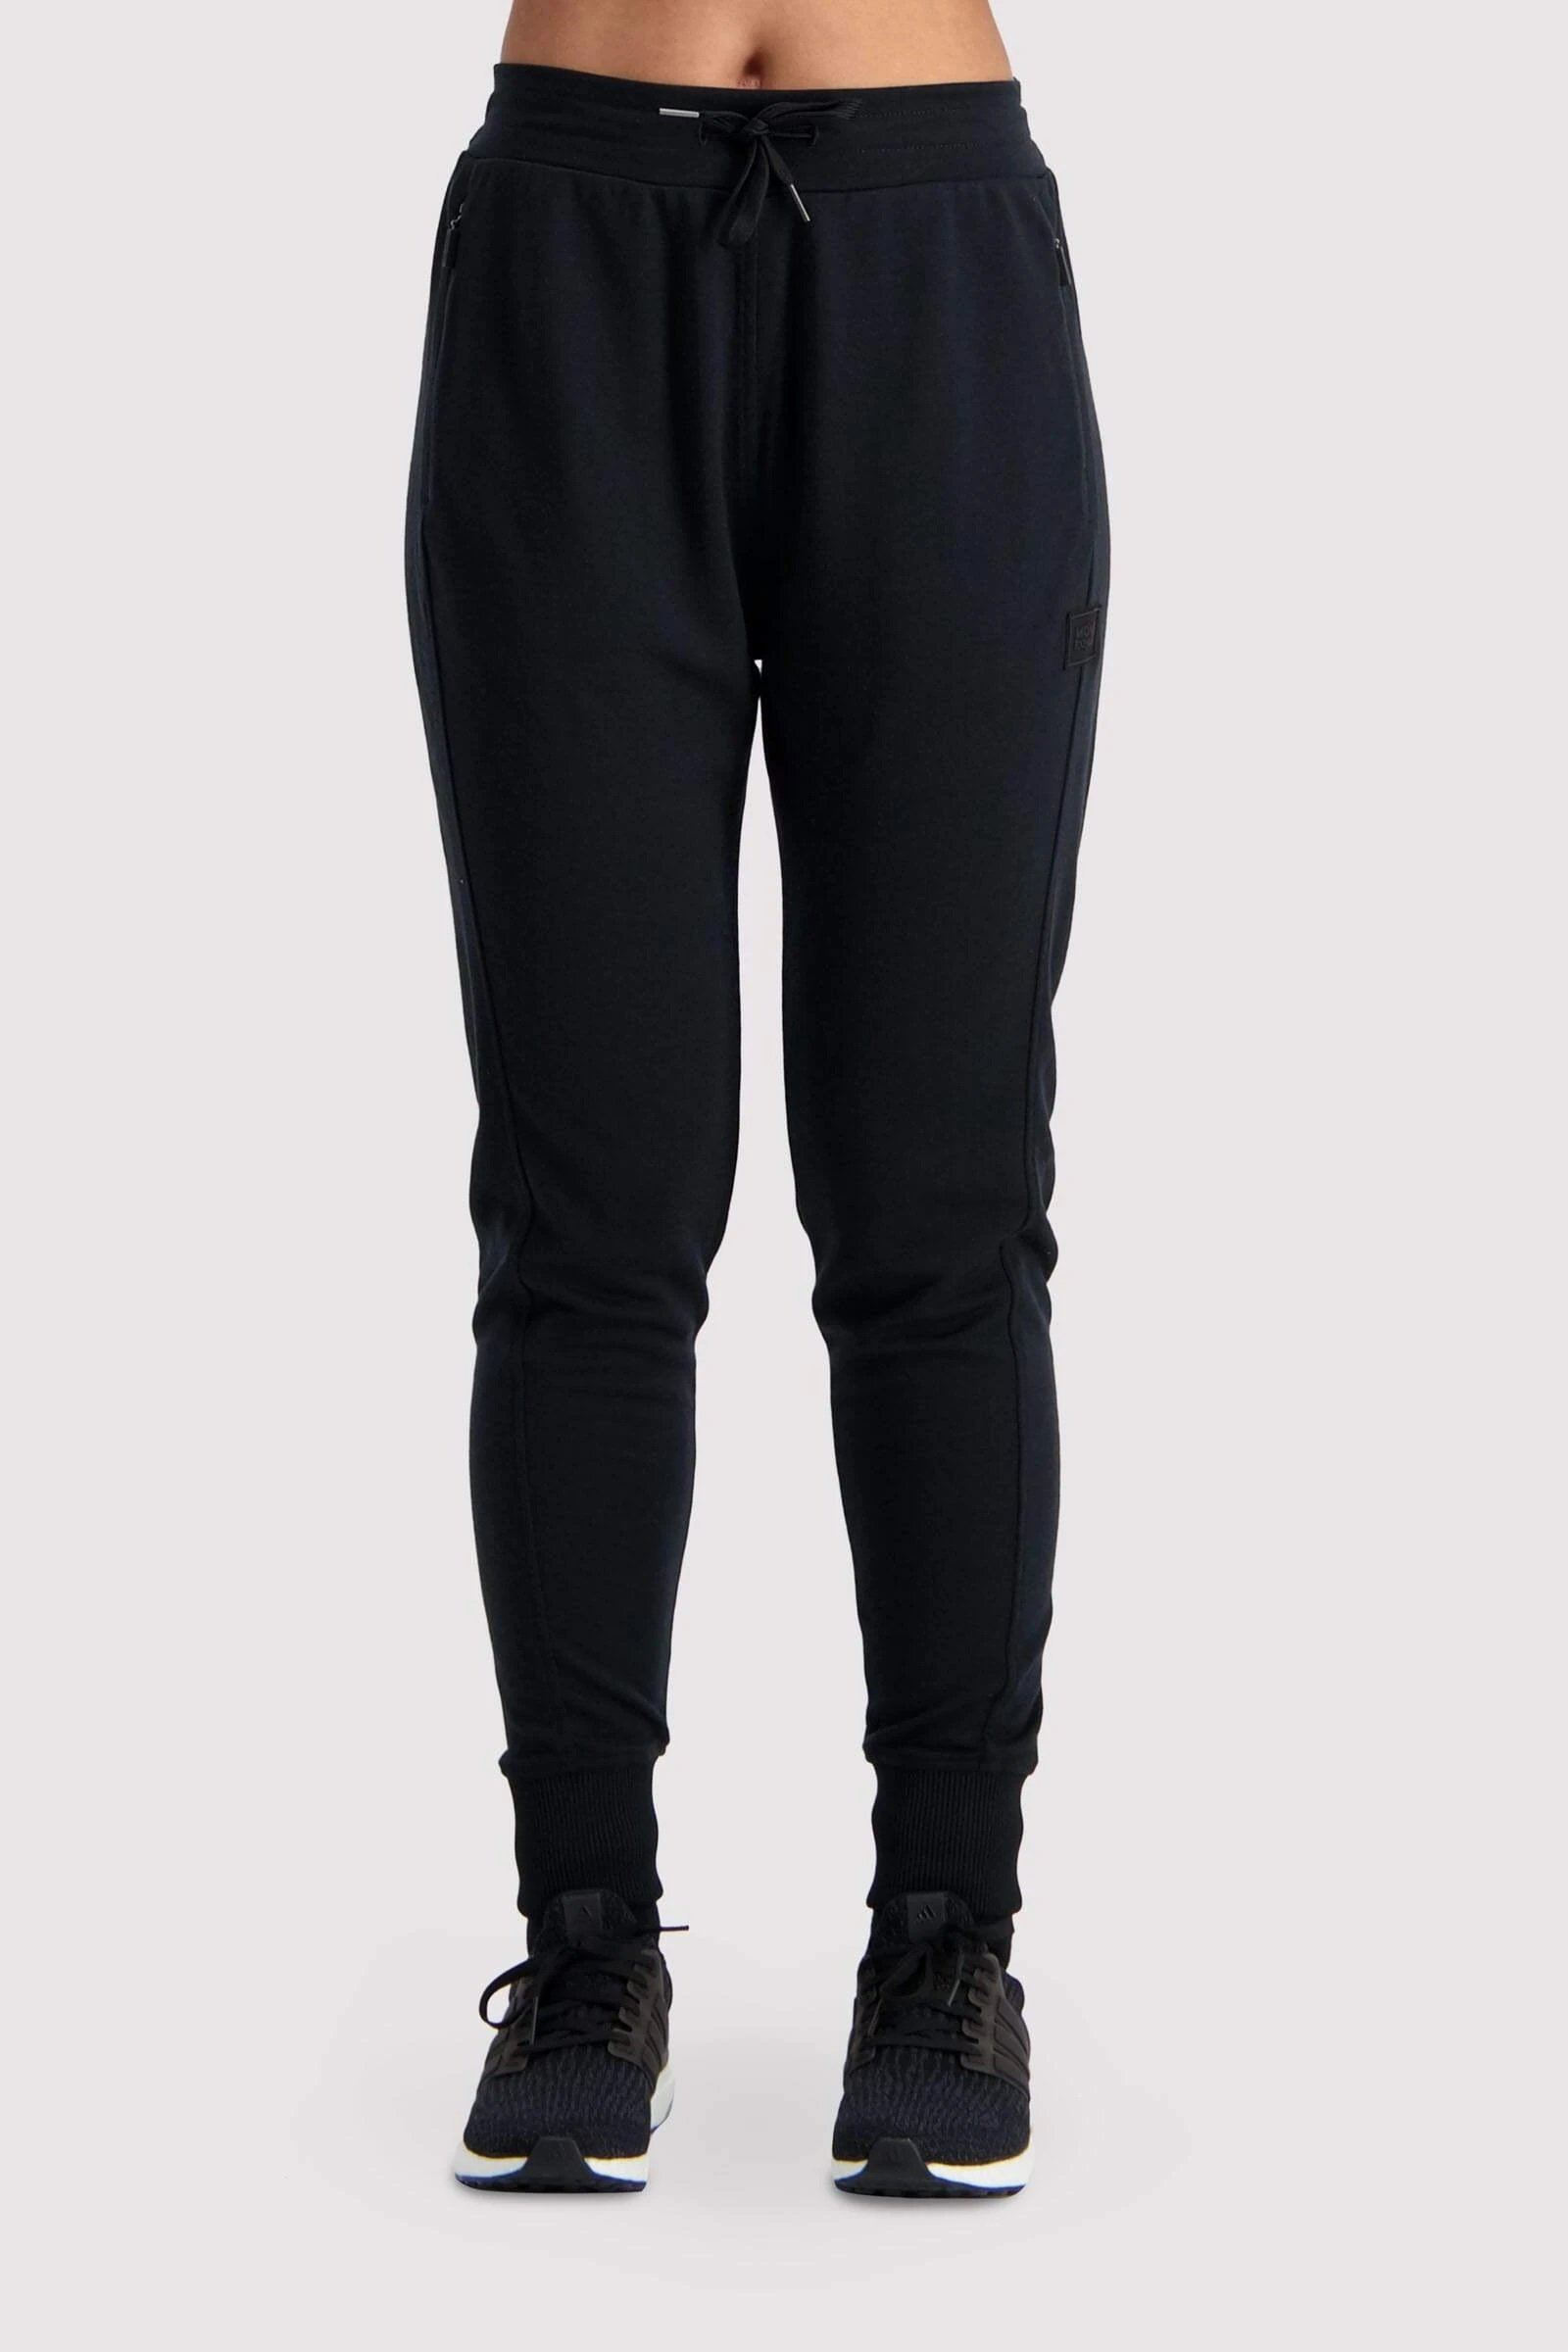 Mons Royale - W's Flight Pant - Weekendbee - sustainable sportswear